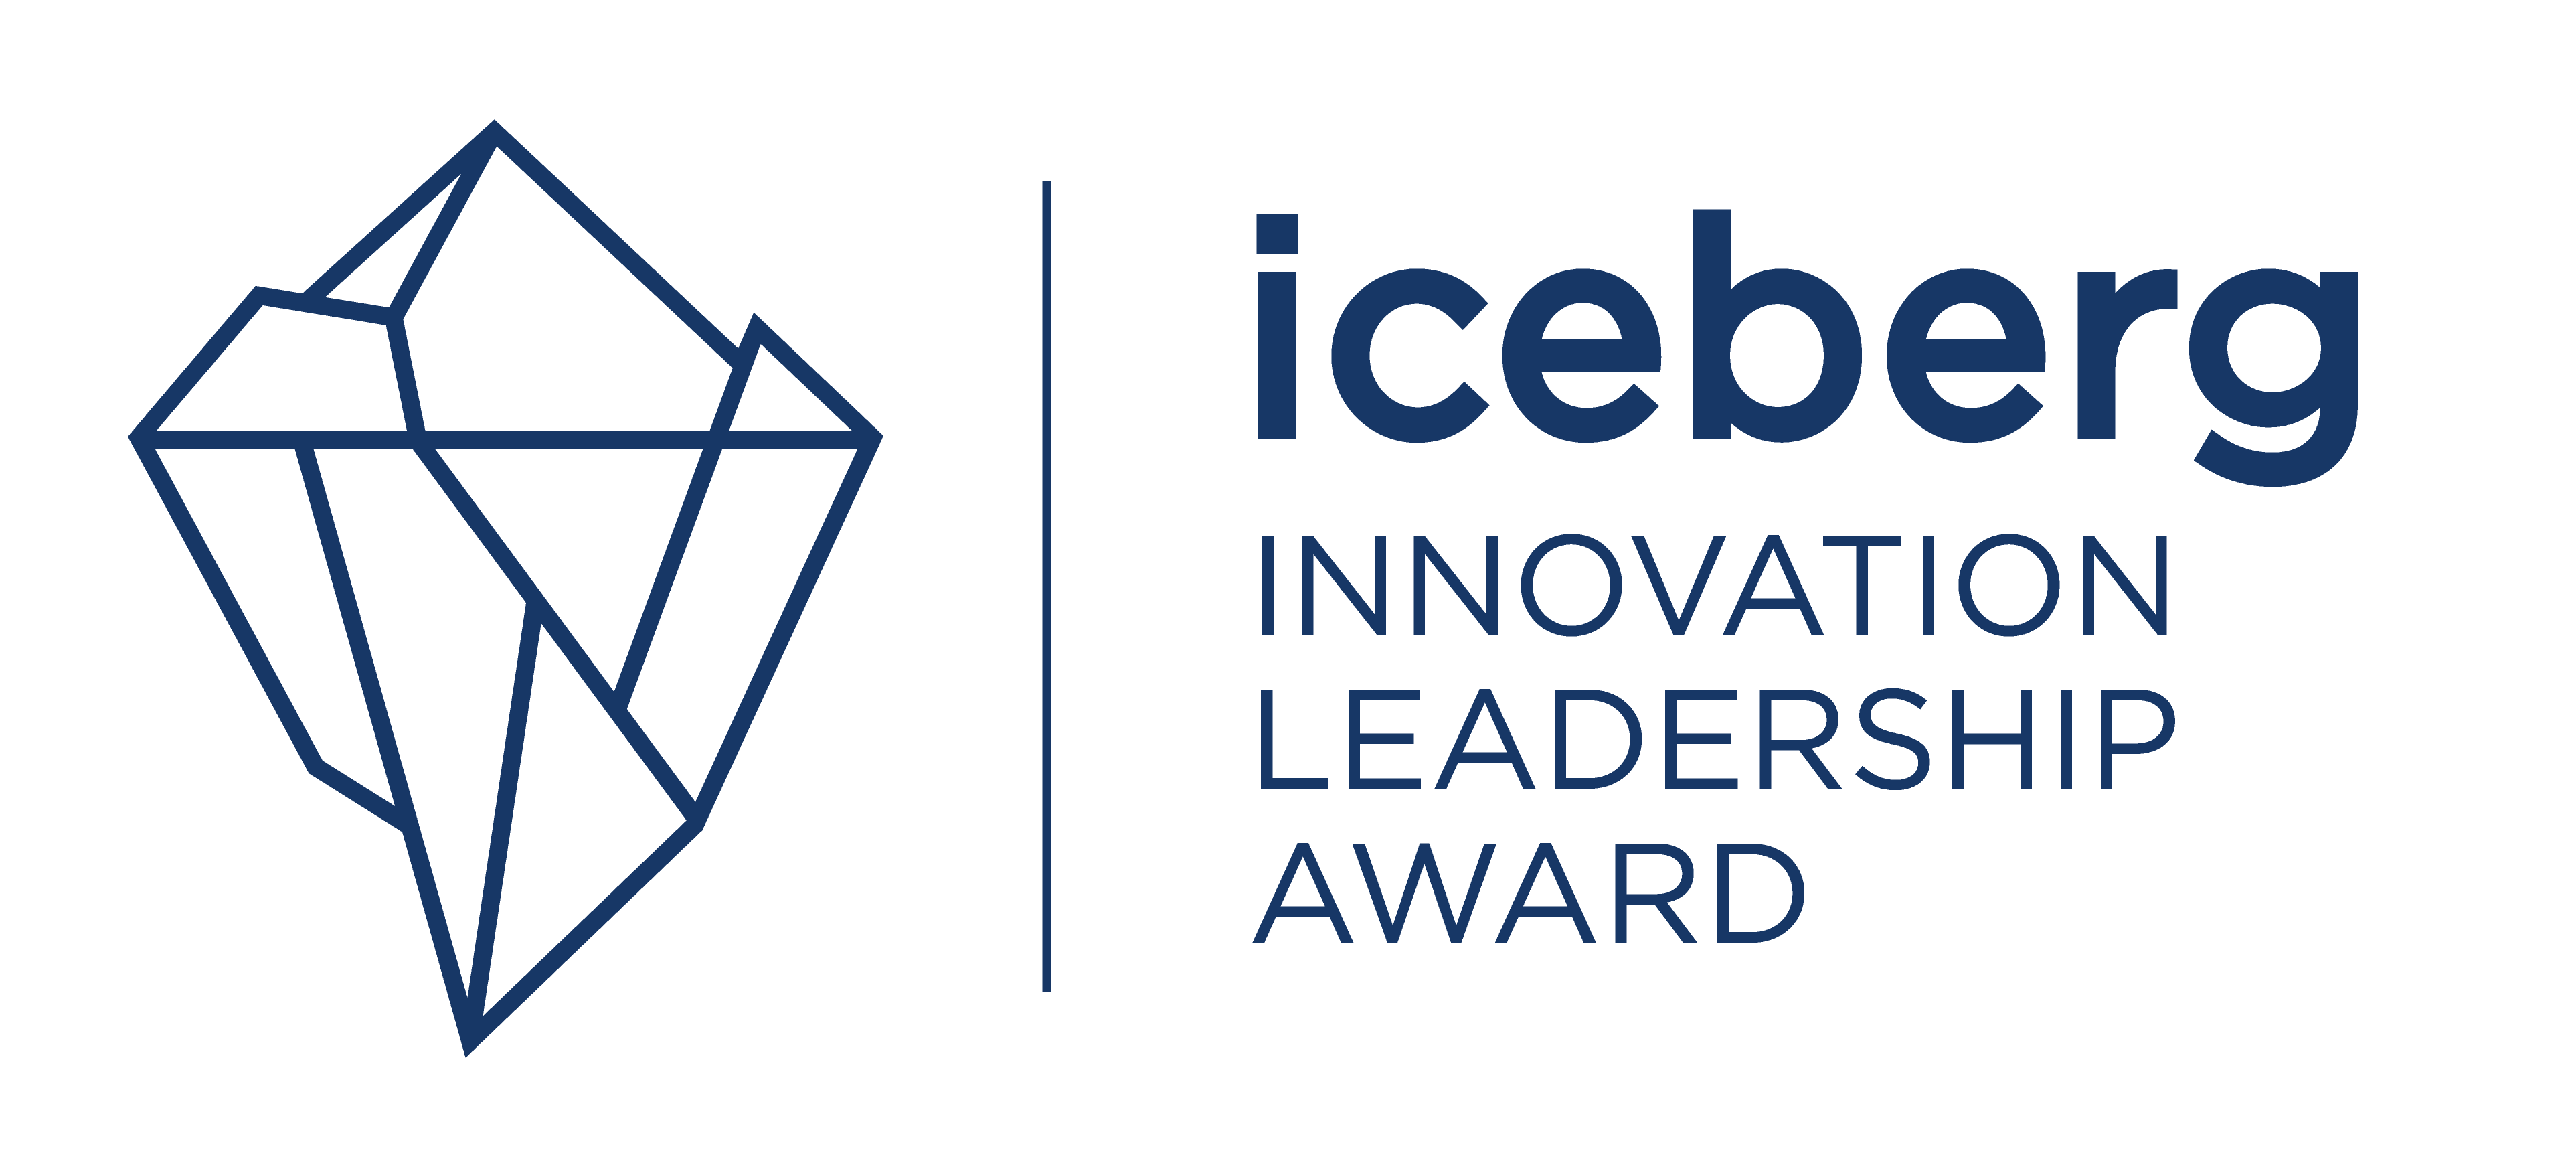 Iceberg logo with text cut